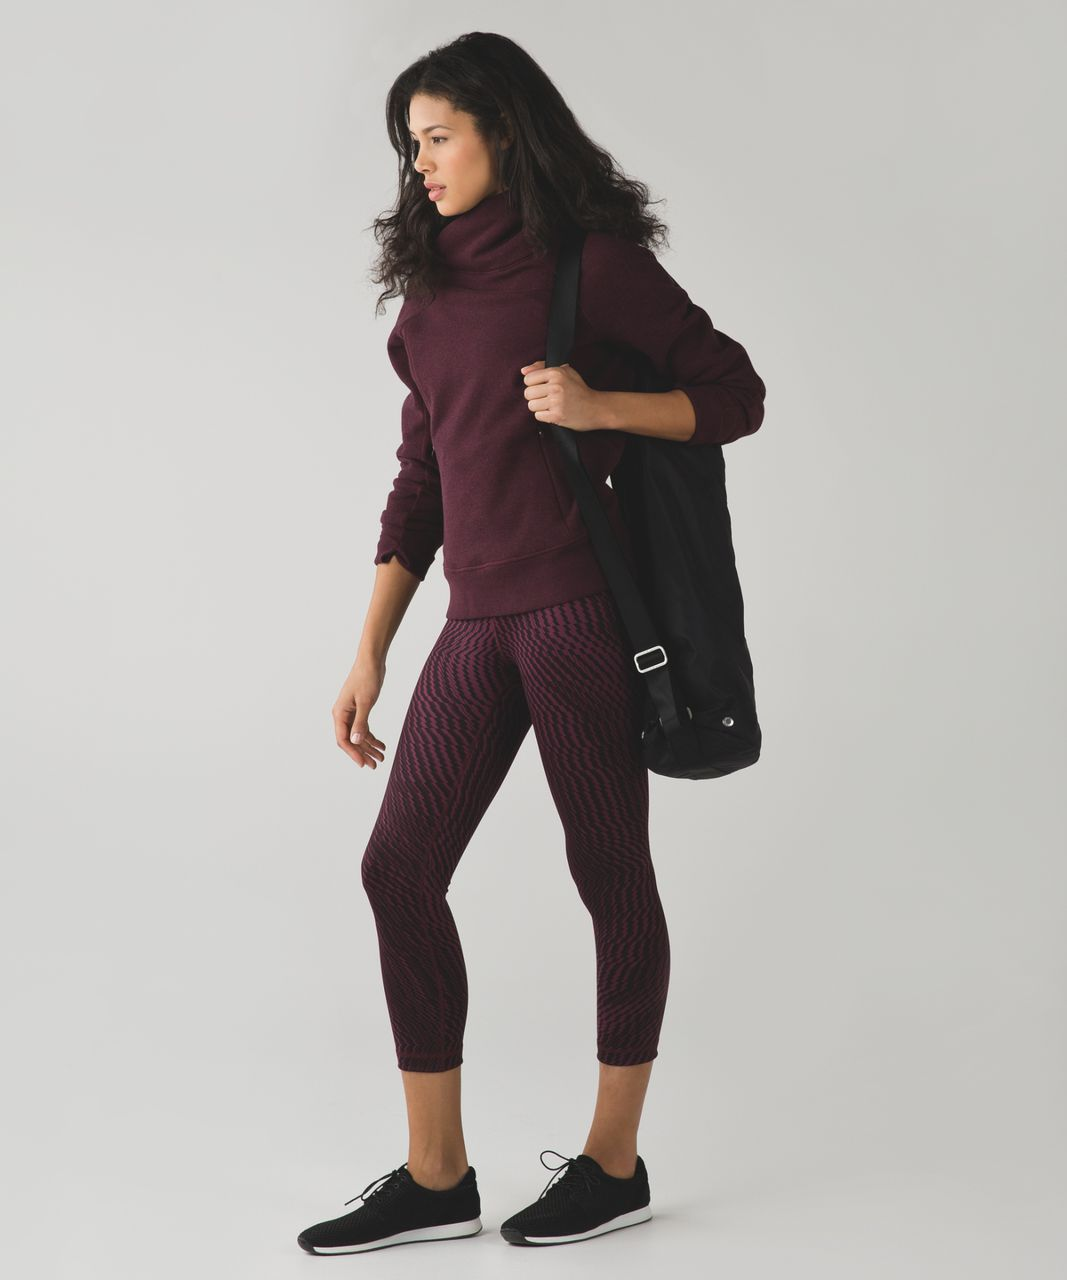 Lululemon Wunder Under Crop (Hi-Rise) *Full-On Luon - Shifted Horizon Red Grape Black